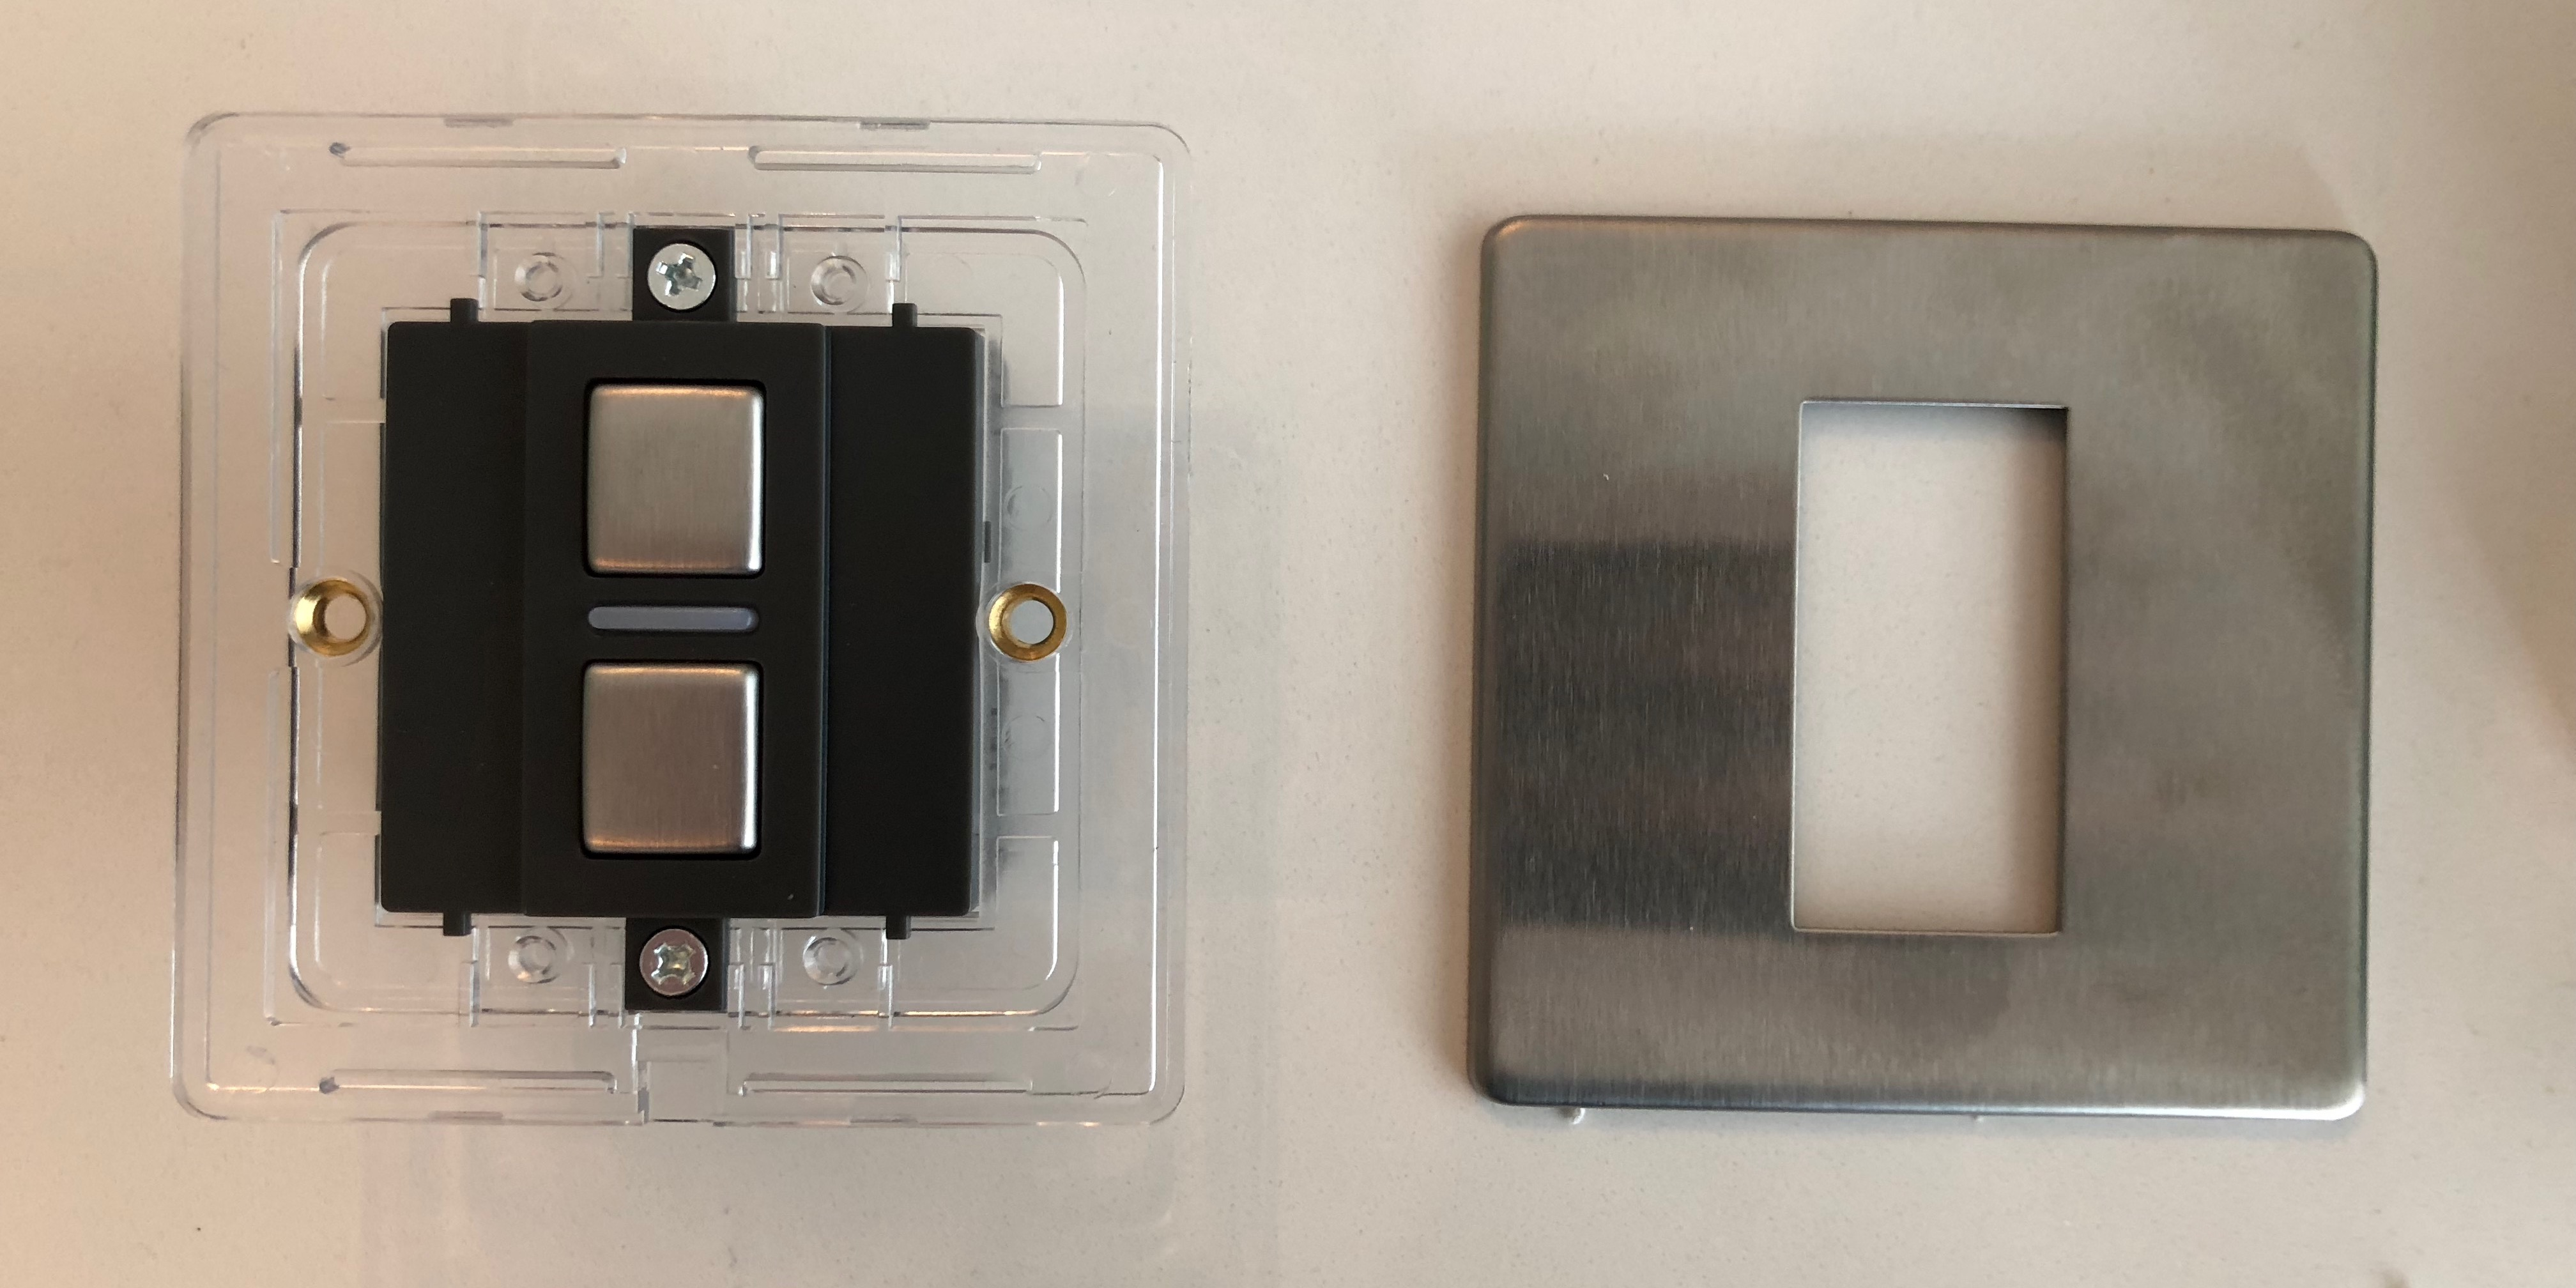 Review Lightwave Light Switch The Best Uk Homekit Solution For Wiring Cost They